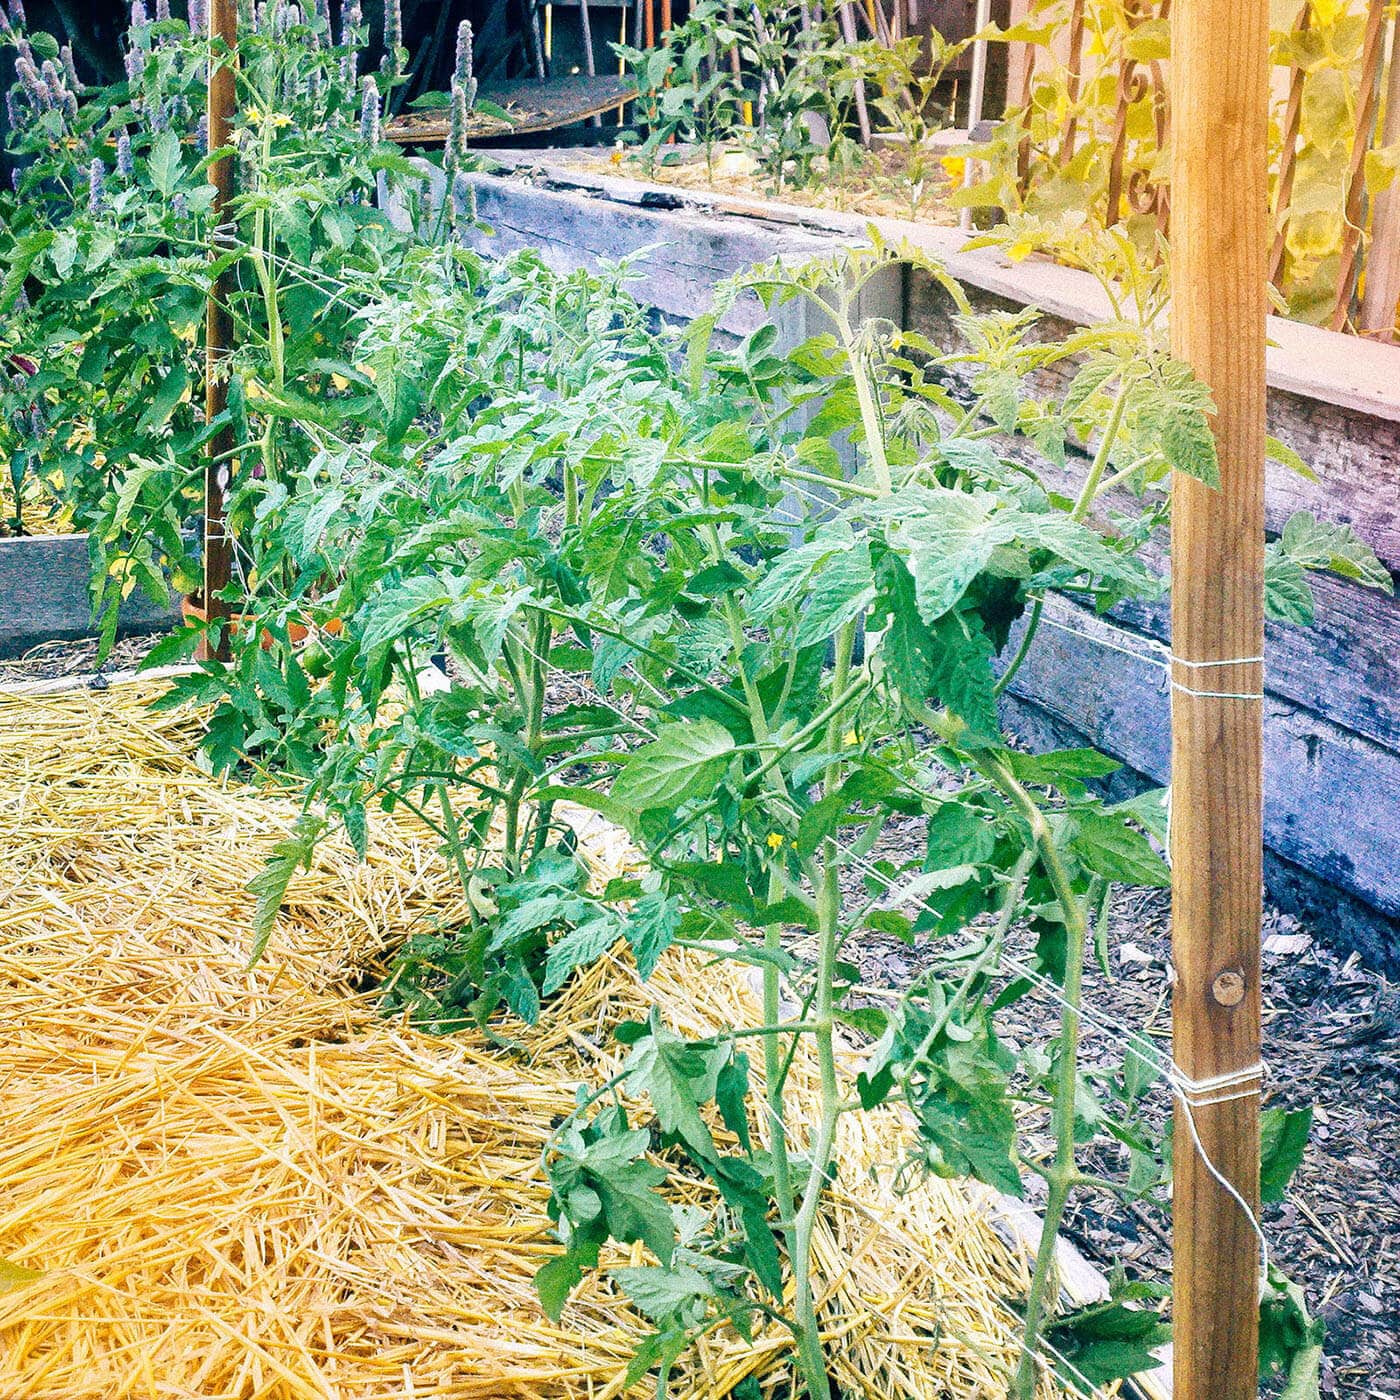 Three tomato plants